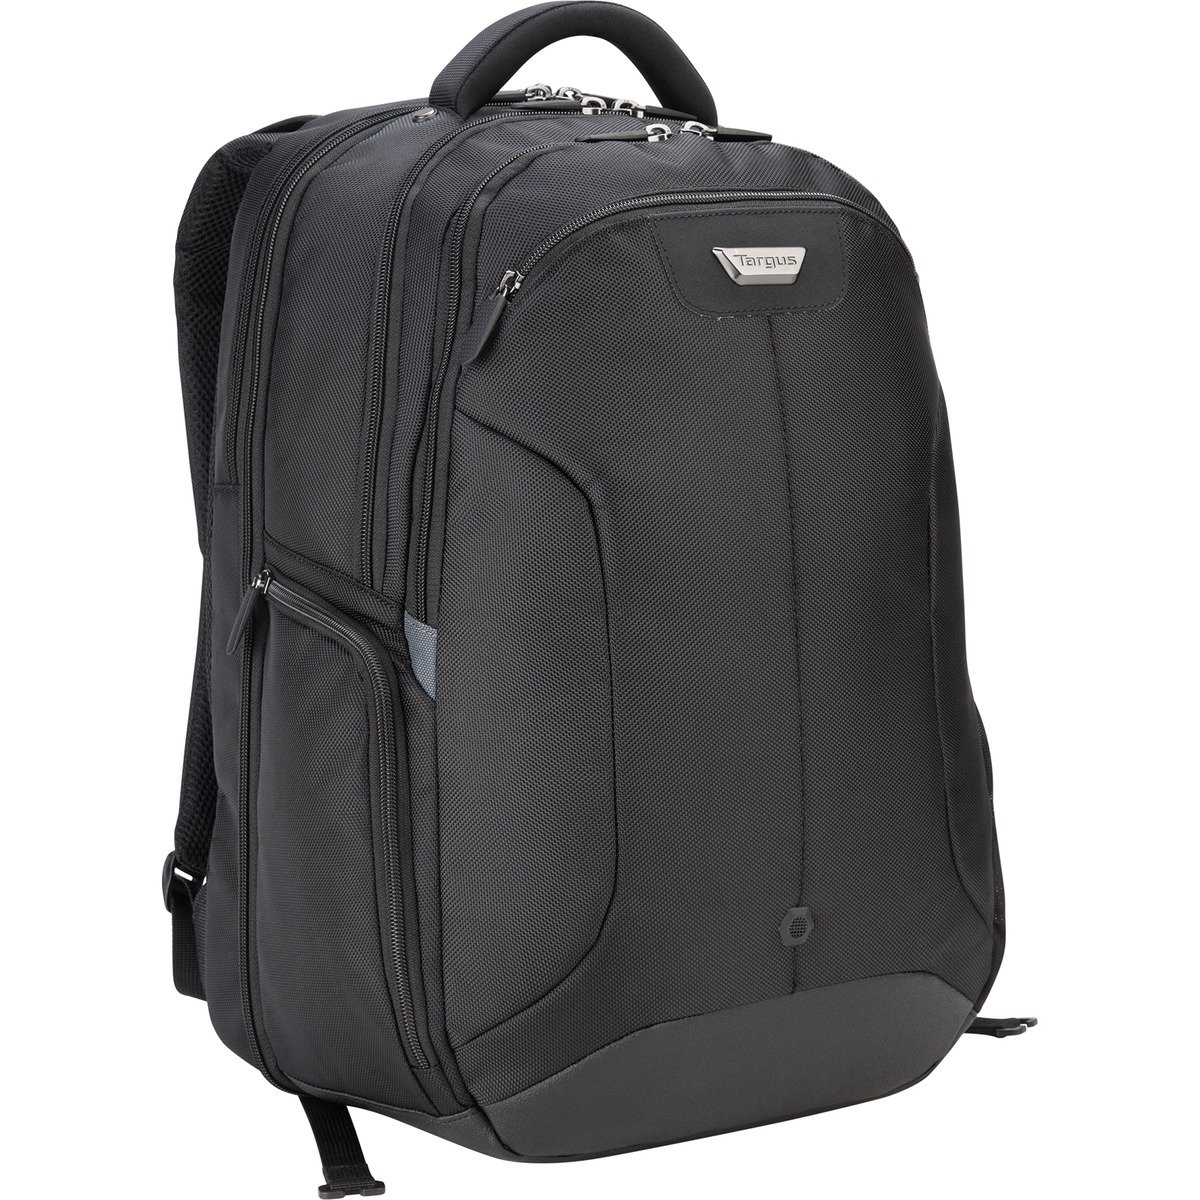 Targus Corporate Traveler Checkpoint-Friendly Professional Business Laptop Backpack with Protective Sleeve for 16-Inch Laptop, Black (CUCT02B) by Targus